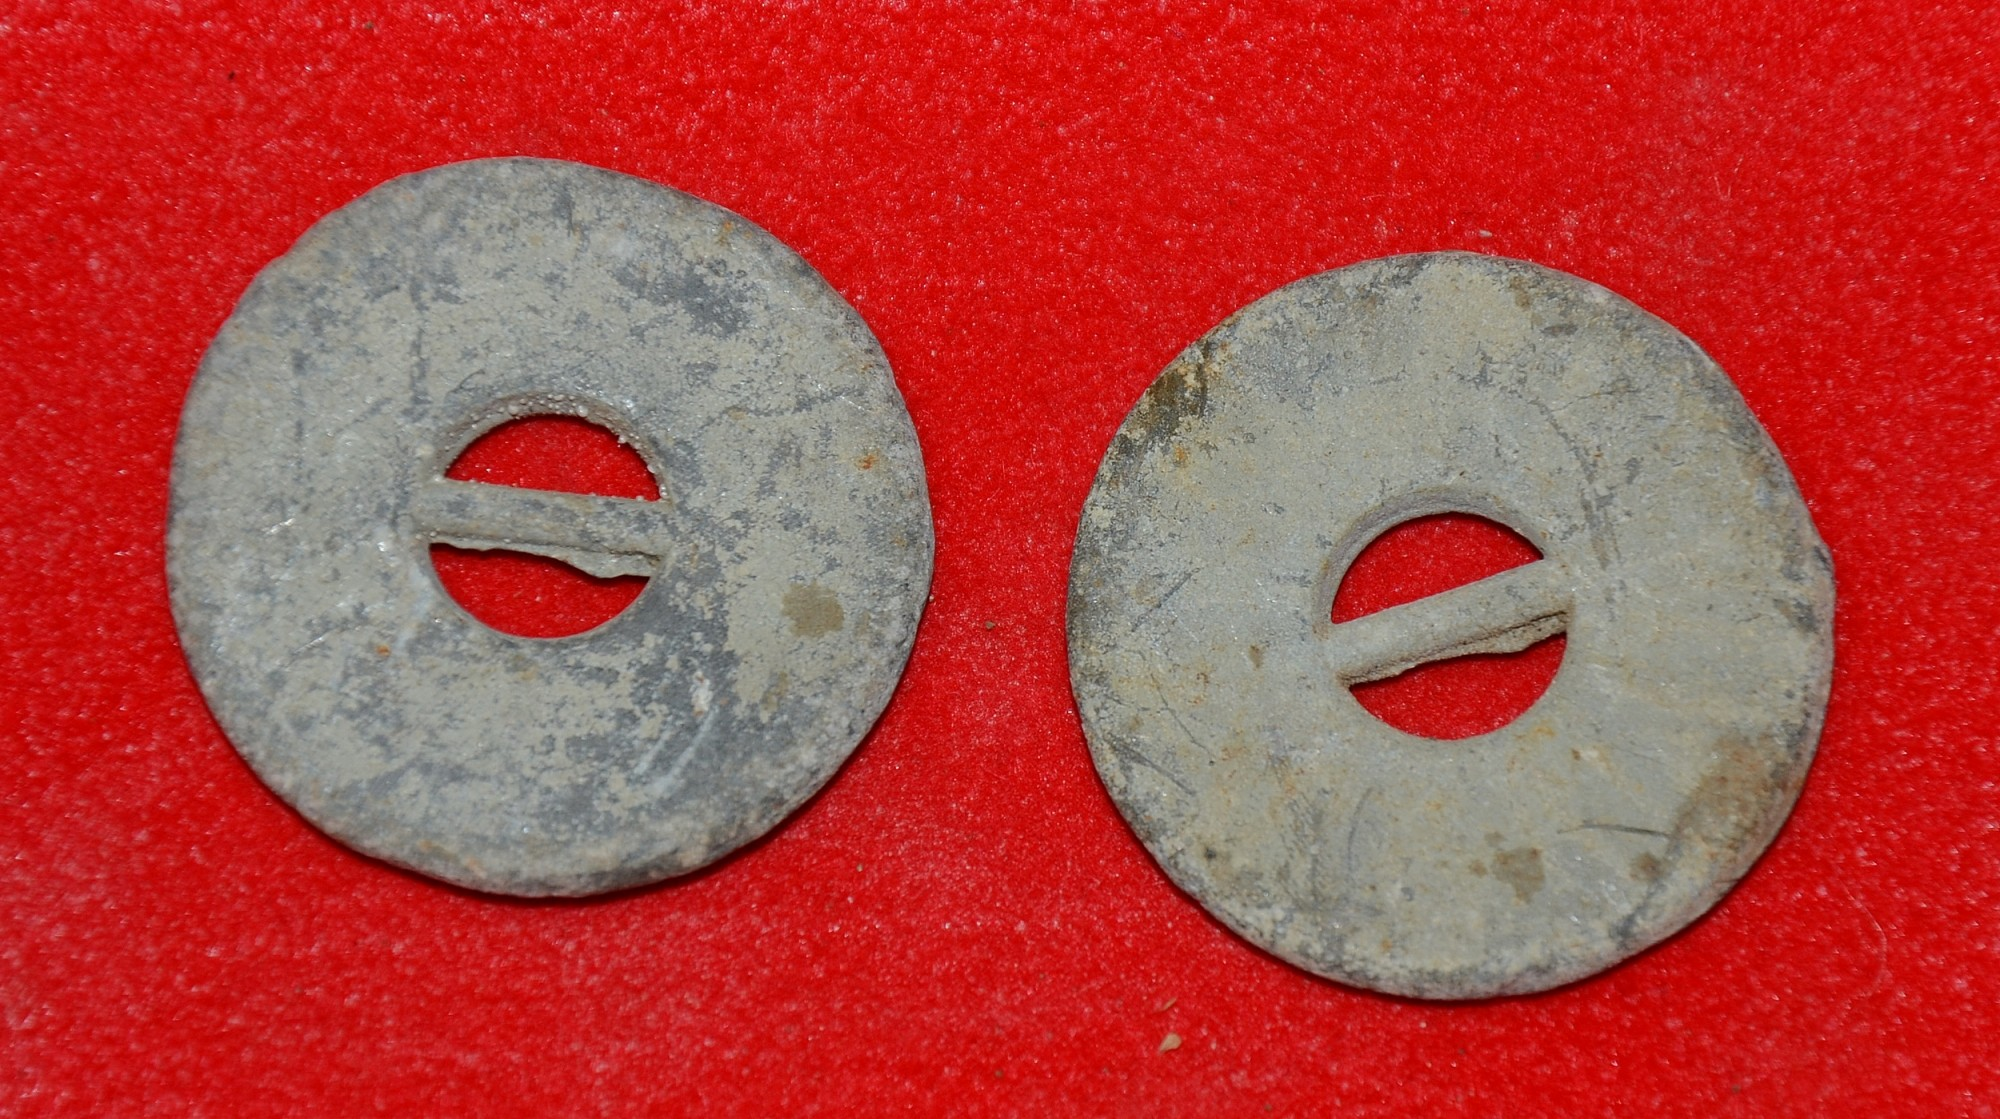 PAIR OF LEAD WEIGHTS FOR AN OFFICER'S FROCK COAT - GETTYSBURG